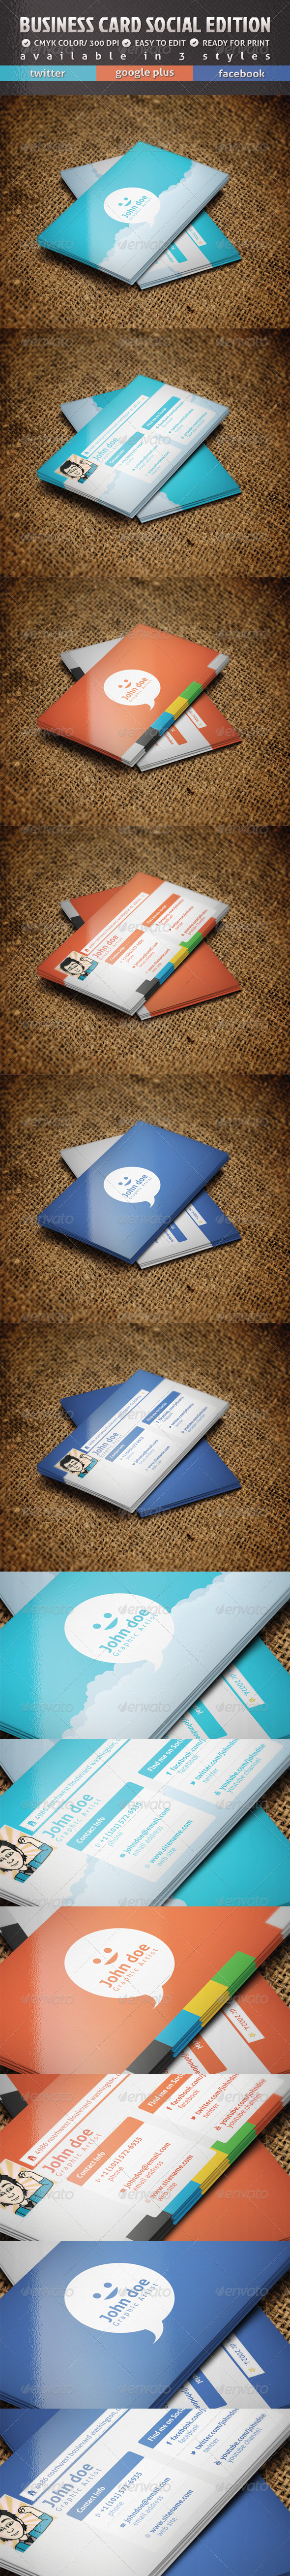 Business Card Social Edition - Creative Business Cards